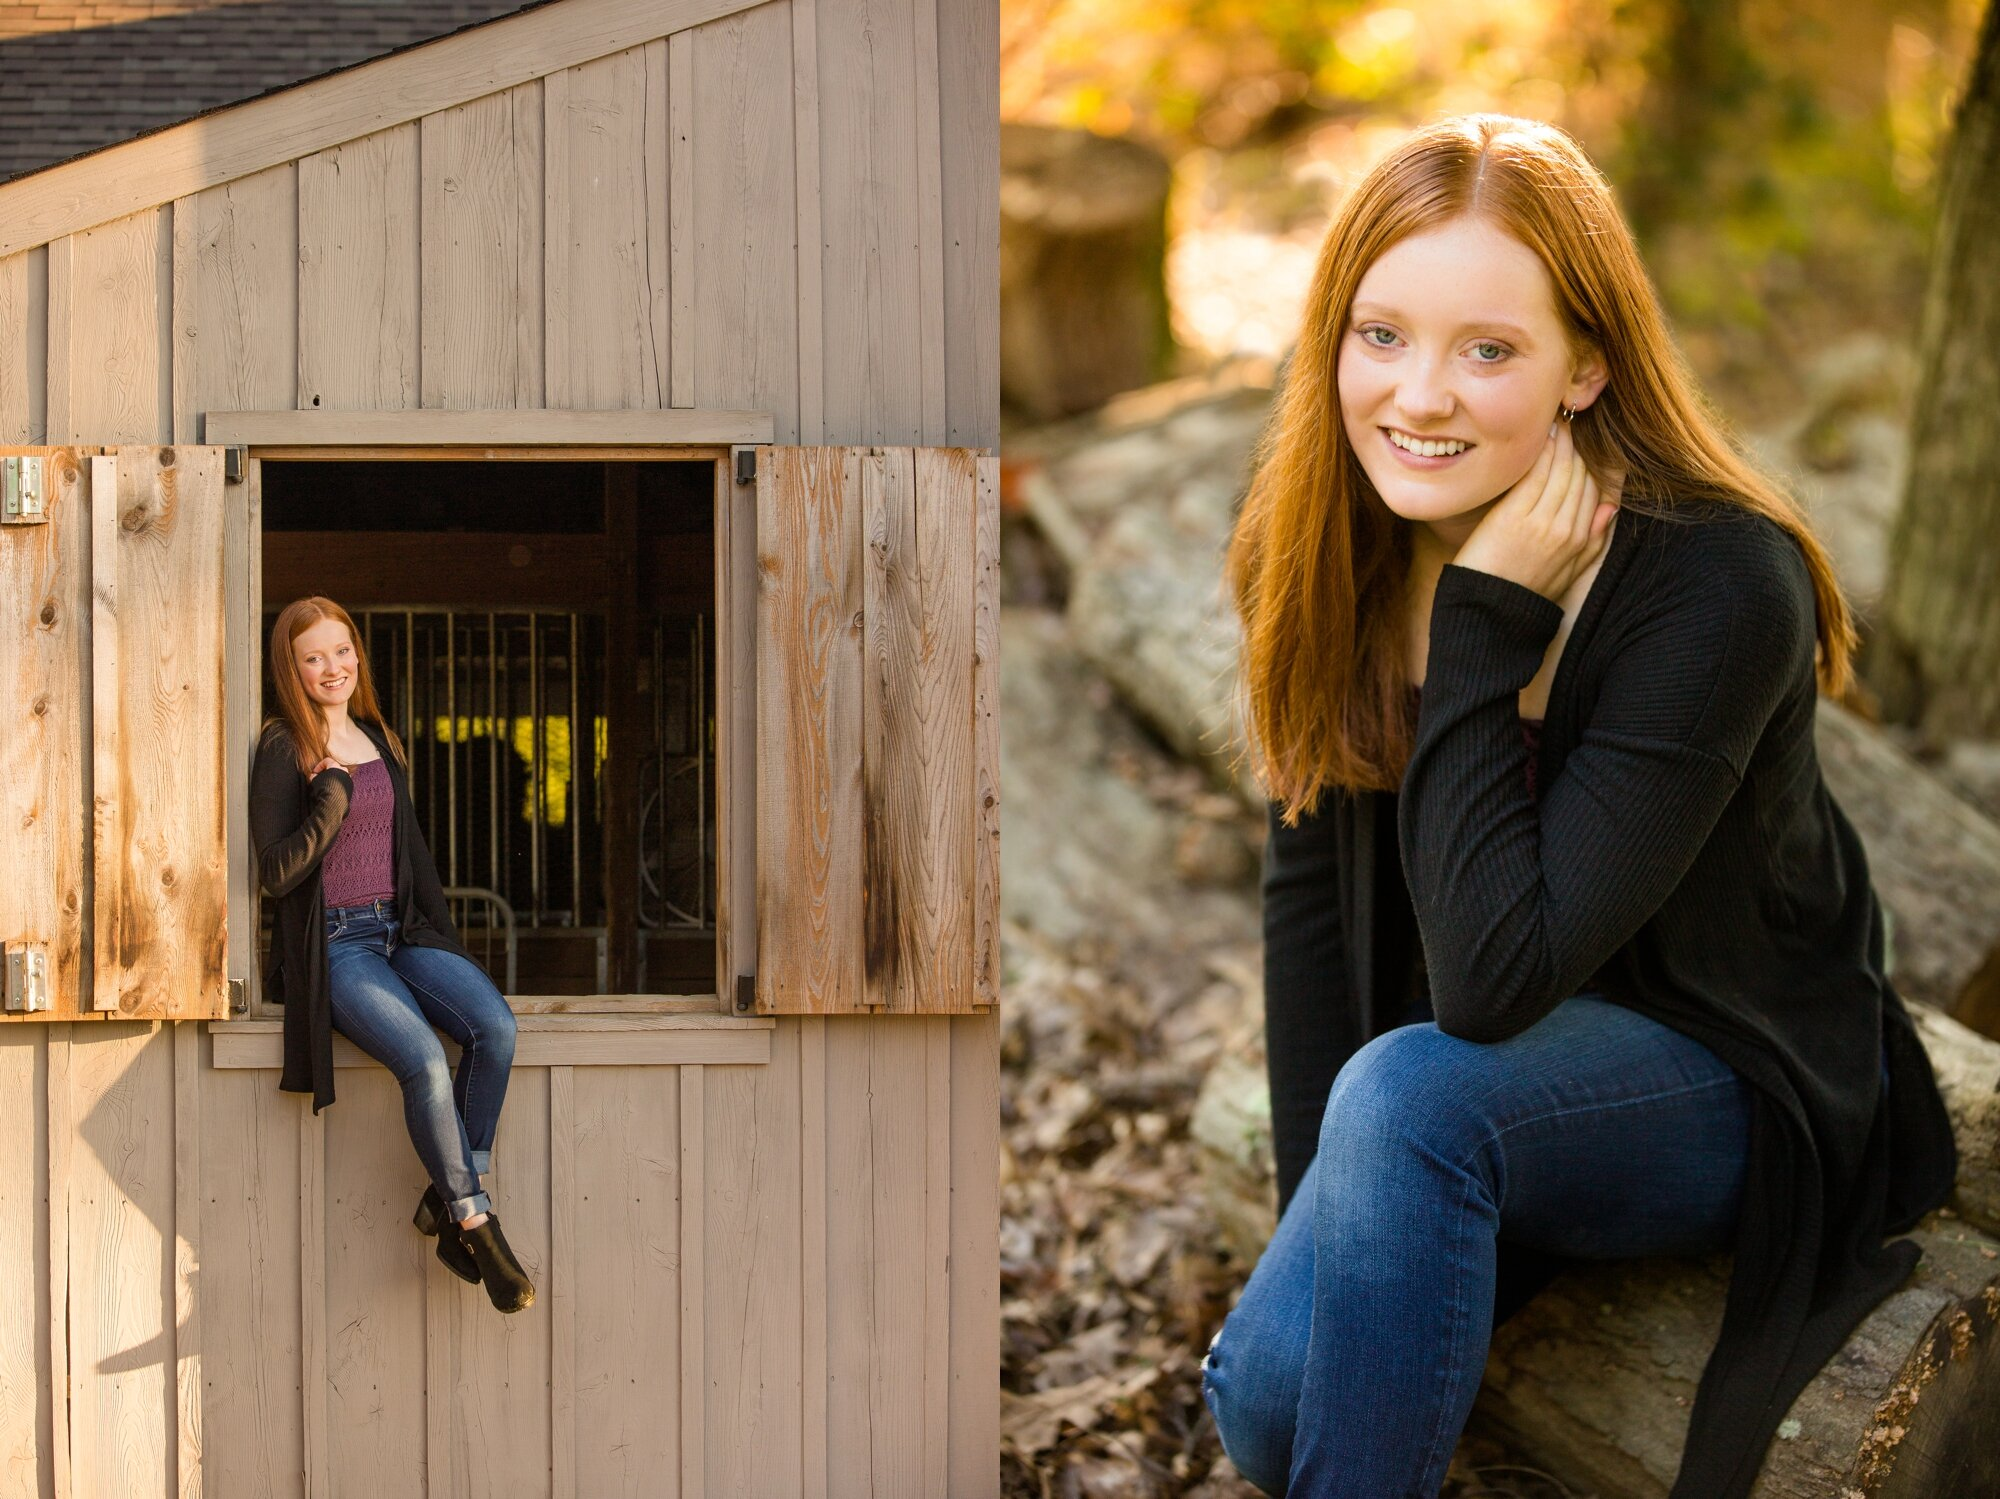 pittsburgh senior photographer, mars high school senior photos, seneca valley senior photos, locations in pittsburgh for senior photos